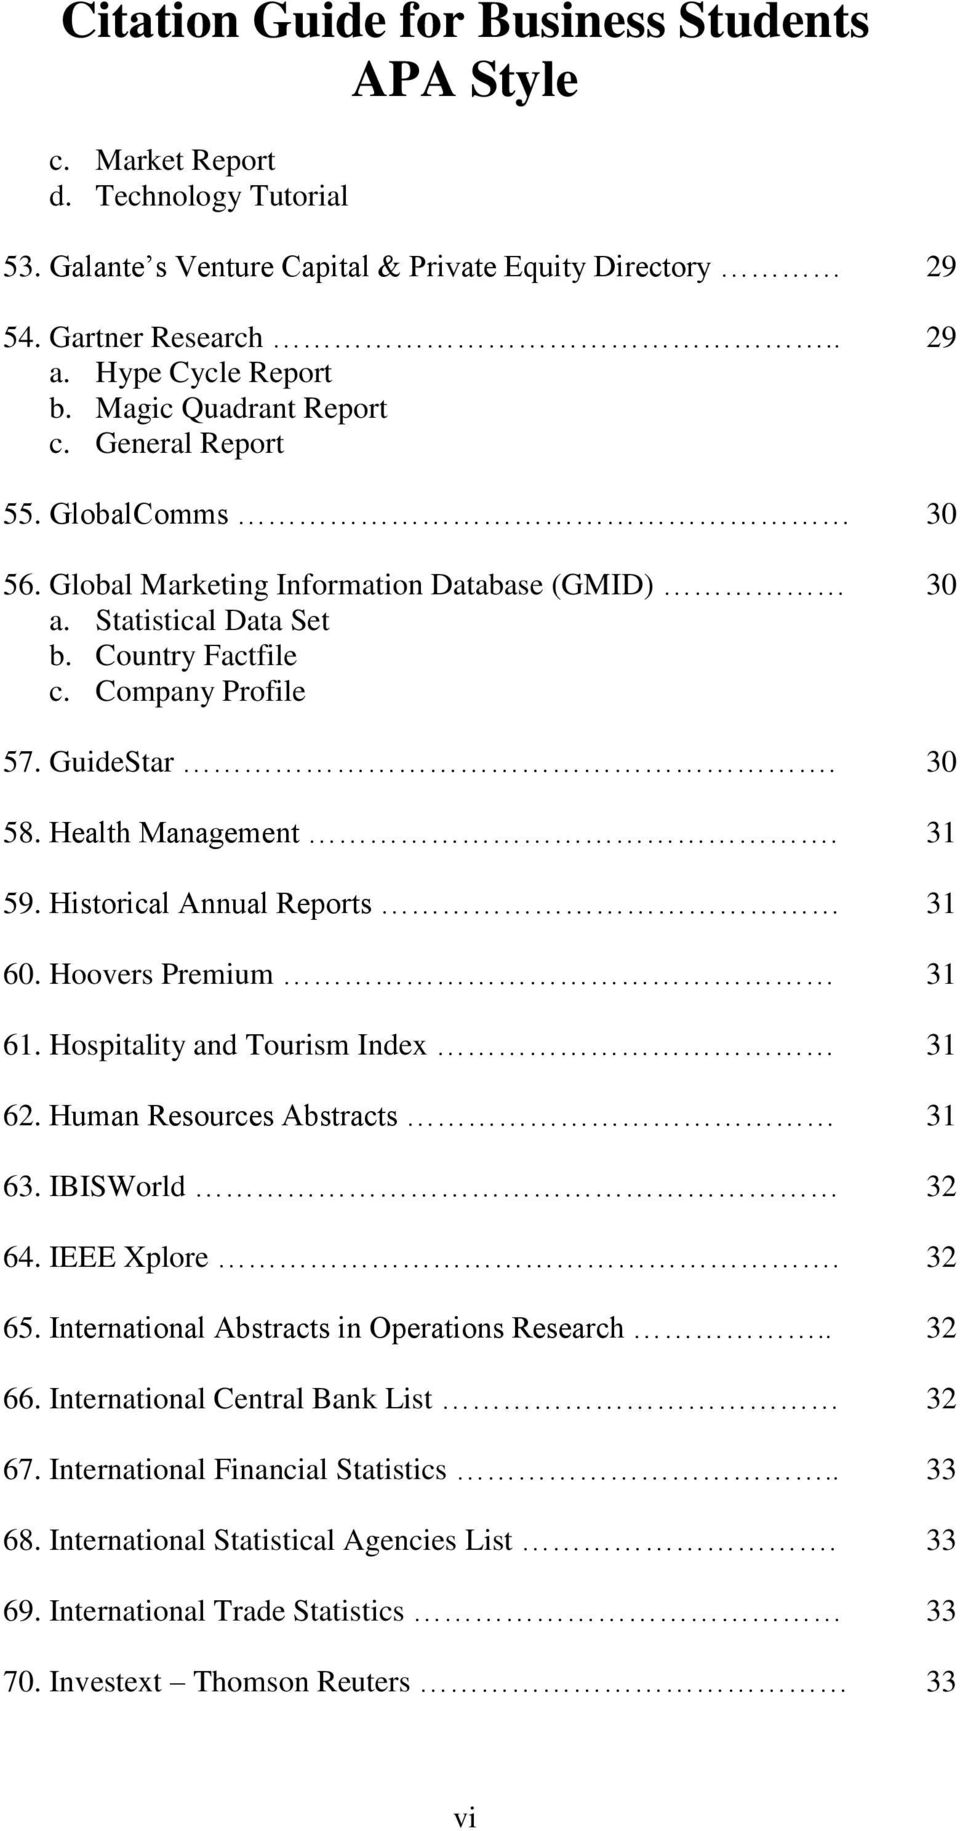 Historical Annual Reports 31 60. Hoovers Premium 31 61. Hospitality and Tourism Index 31 62. Human Resources Abstracts 31 63. IBISWorld 32 64. IEEE Xplore. 32 65.